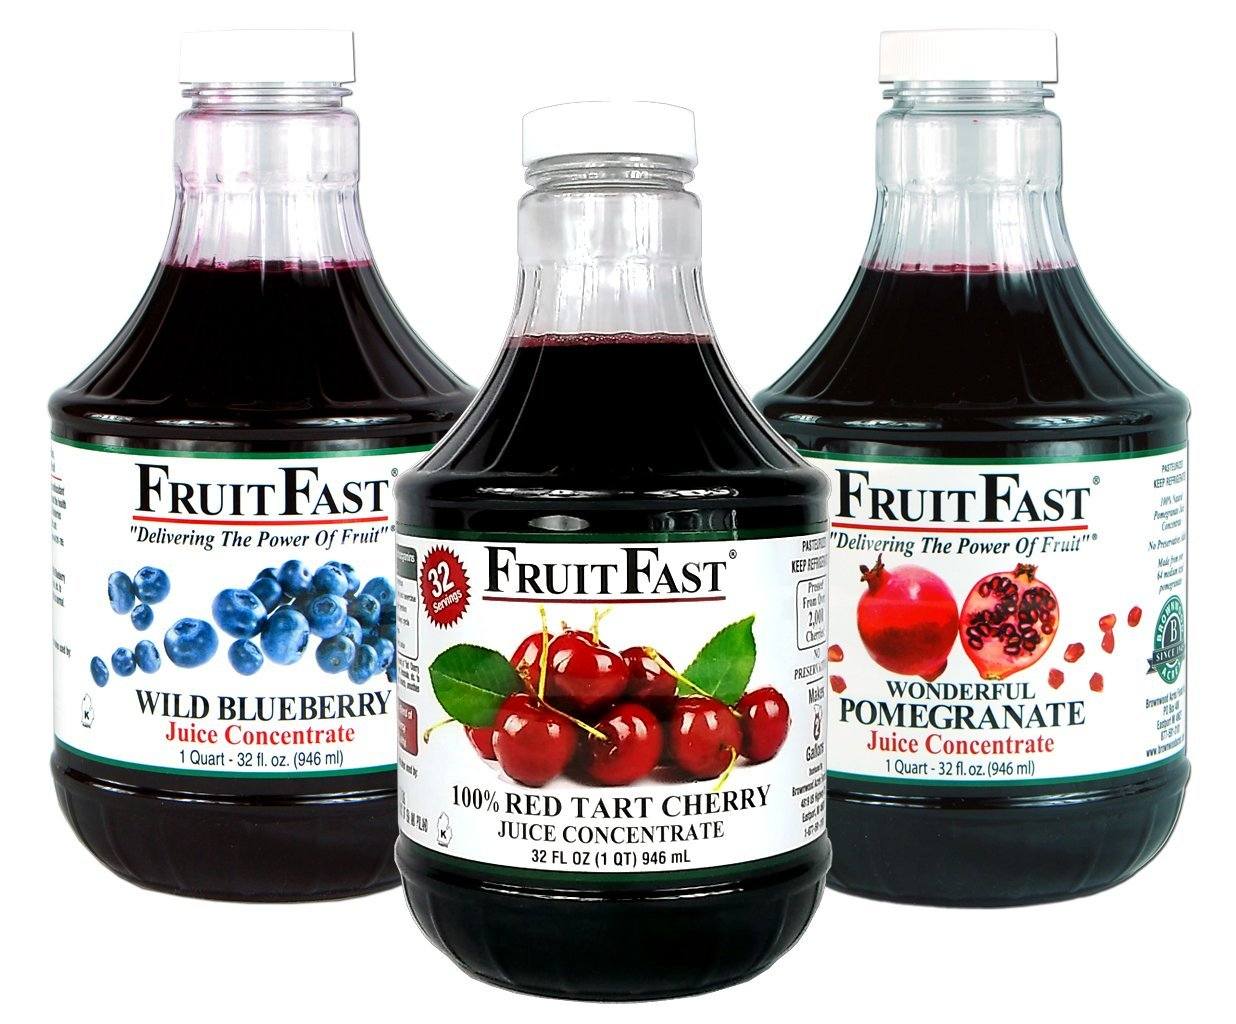 1 Quart Tart Cherry, 1 Quart Wild Blueberry & 1 Quart Pomegranate''Cold Filled'' Juice Concentrate - 3 Pack